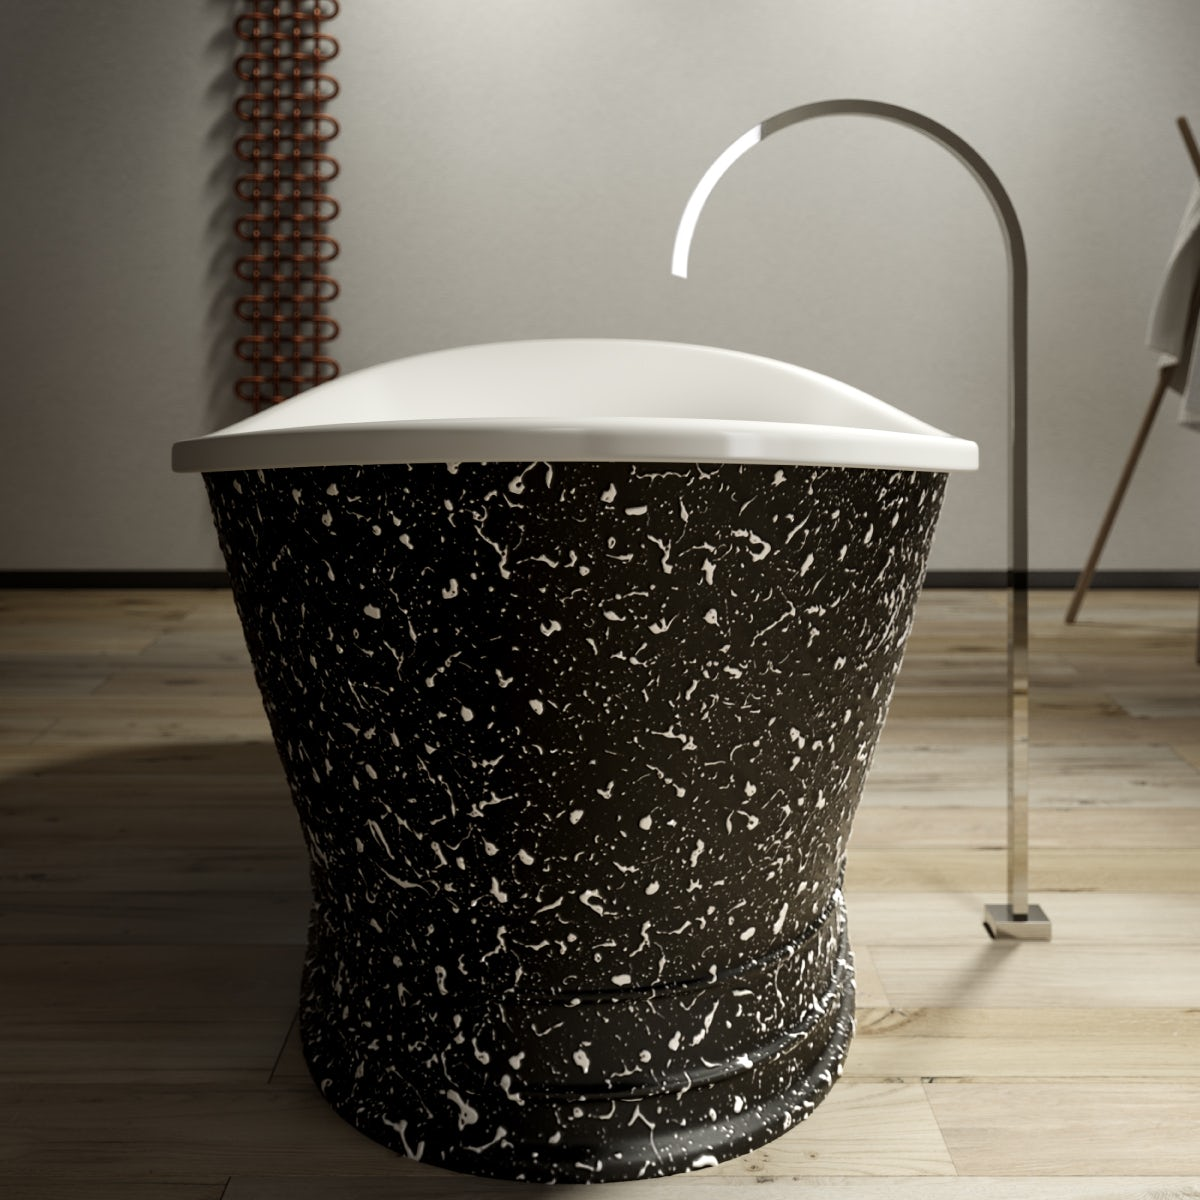 A head-on view of the of the black and white speckled Balthus freestanding bath; with a contemporary Avanzi tall freestanding tap